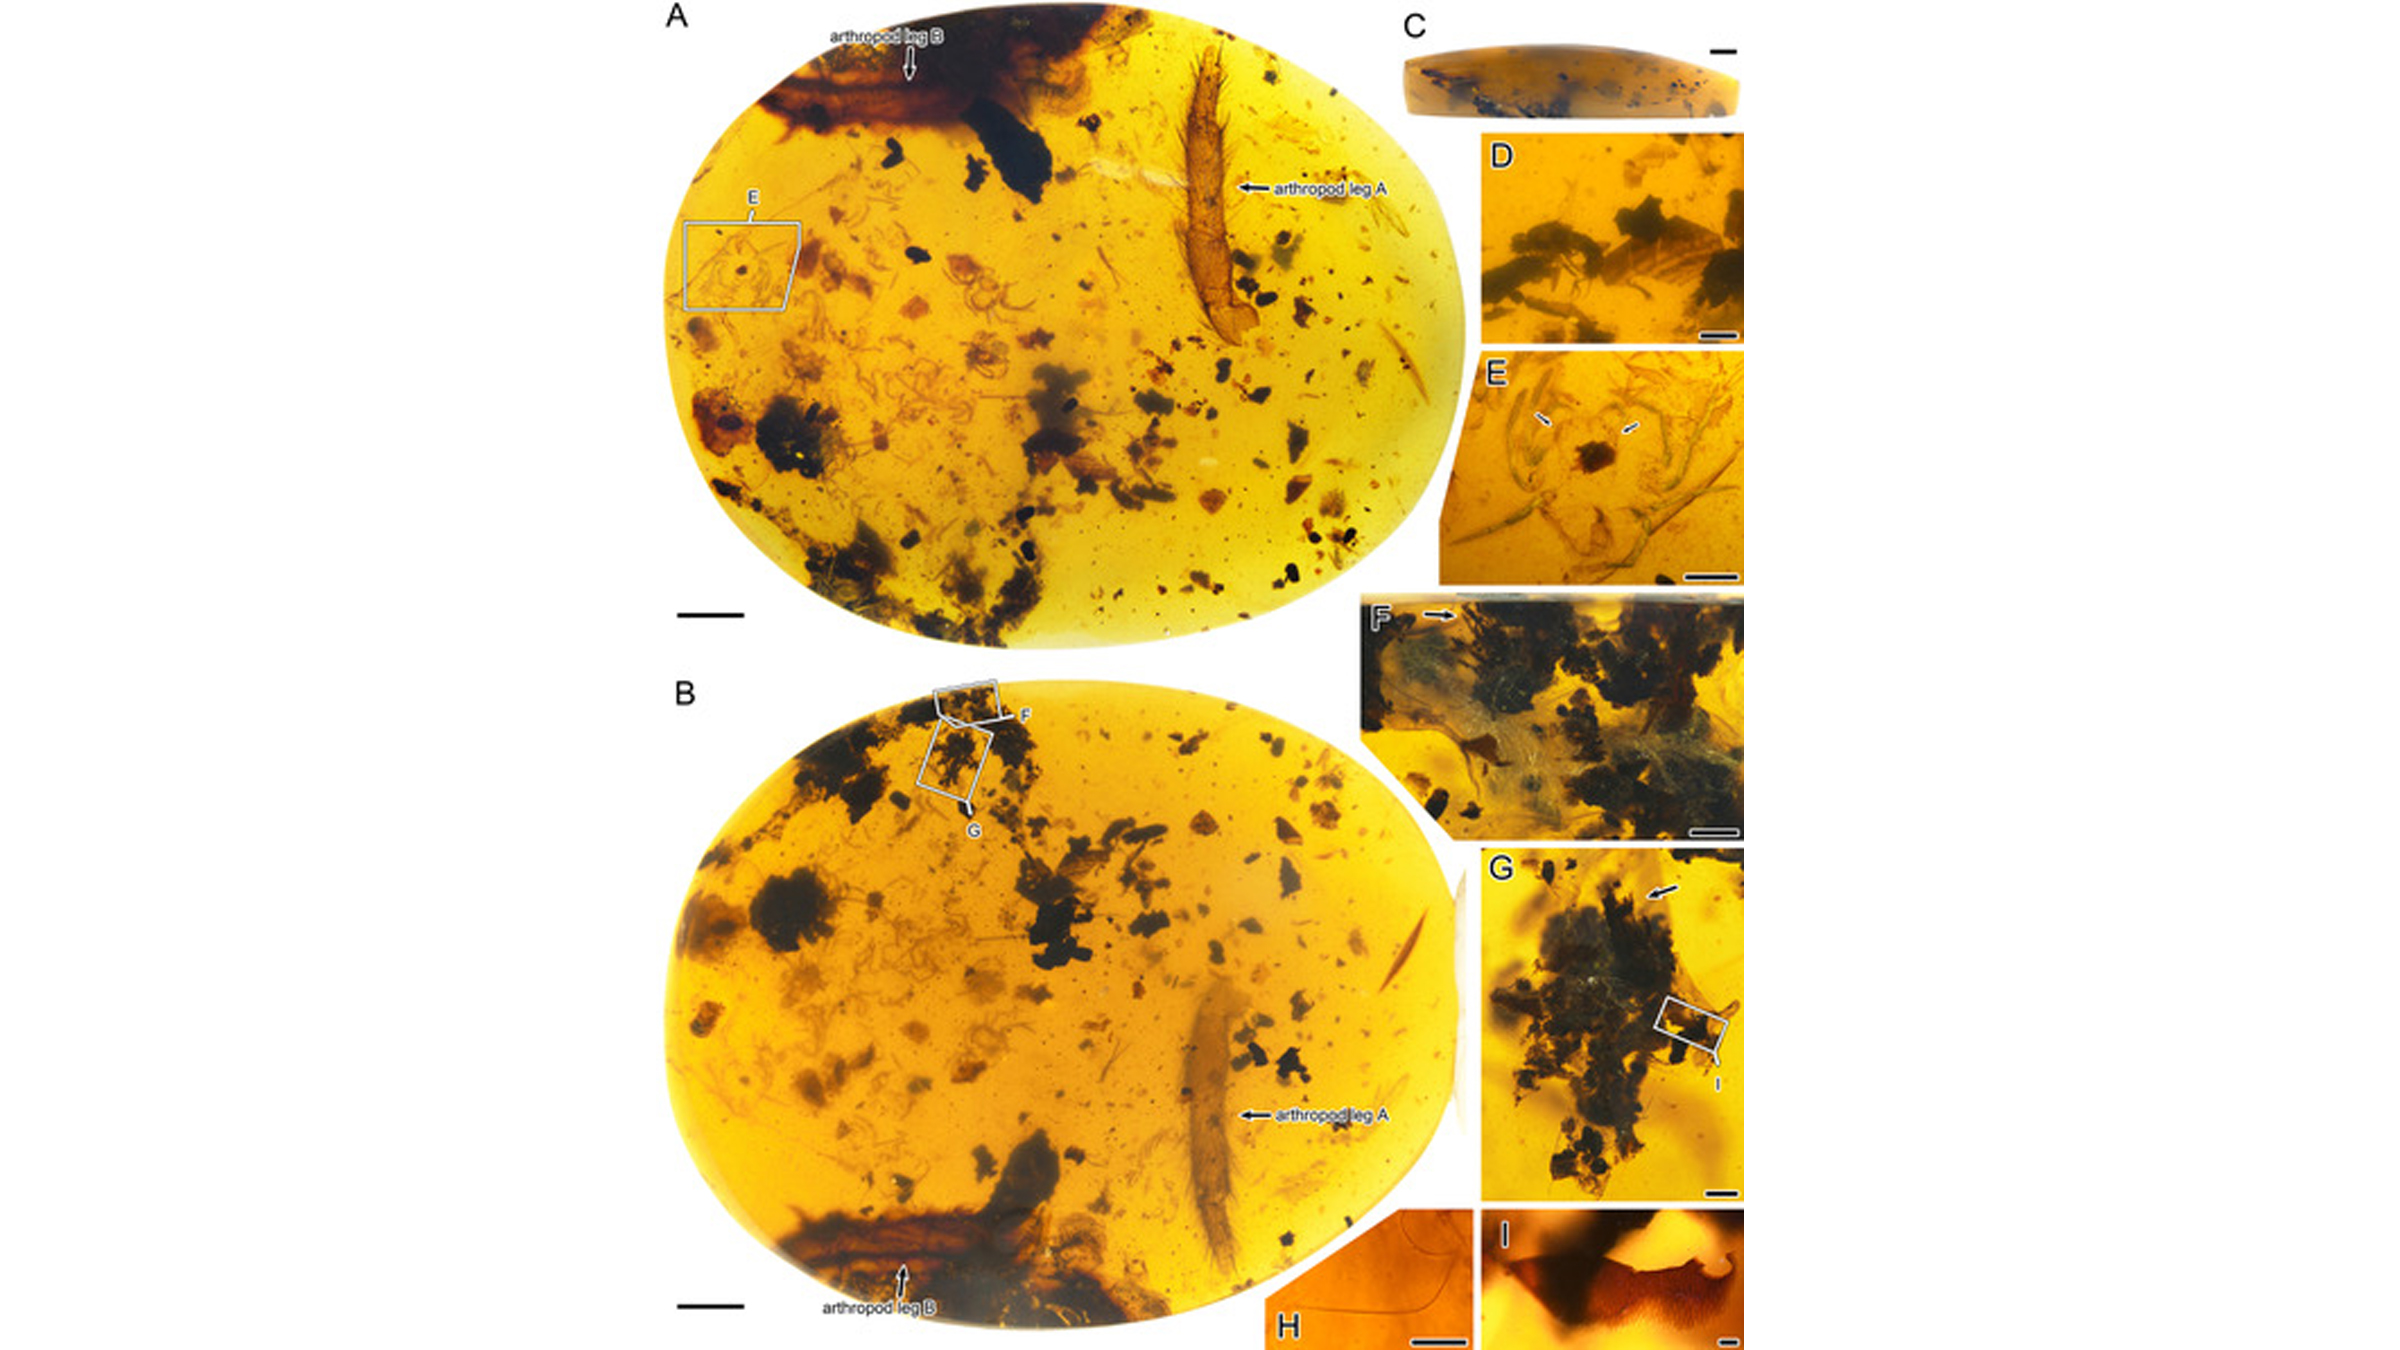 Photos of the arthropod parts, wood fibers and spider silk threads preserved in the amber.